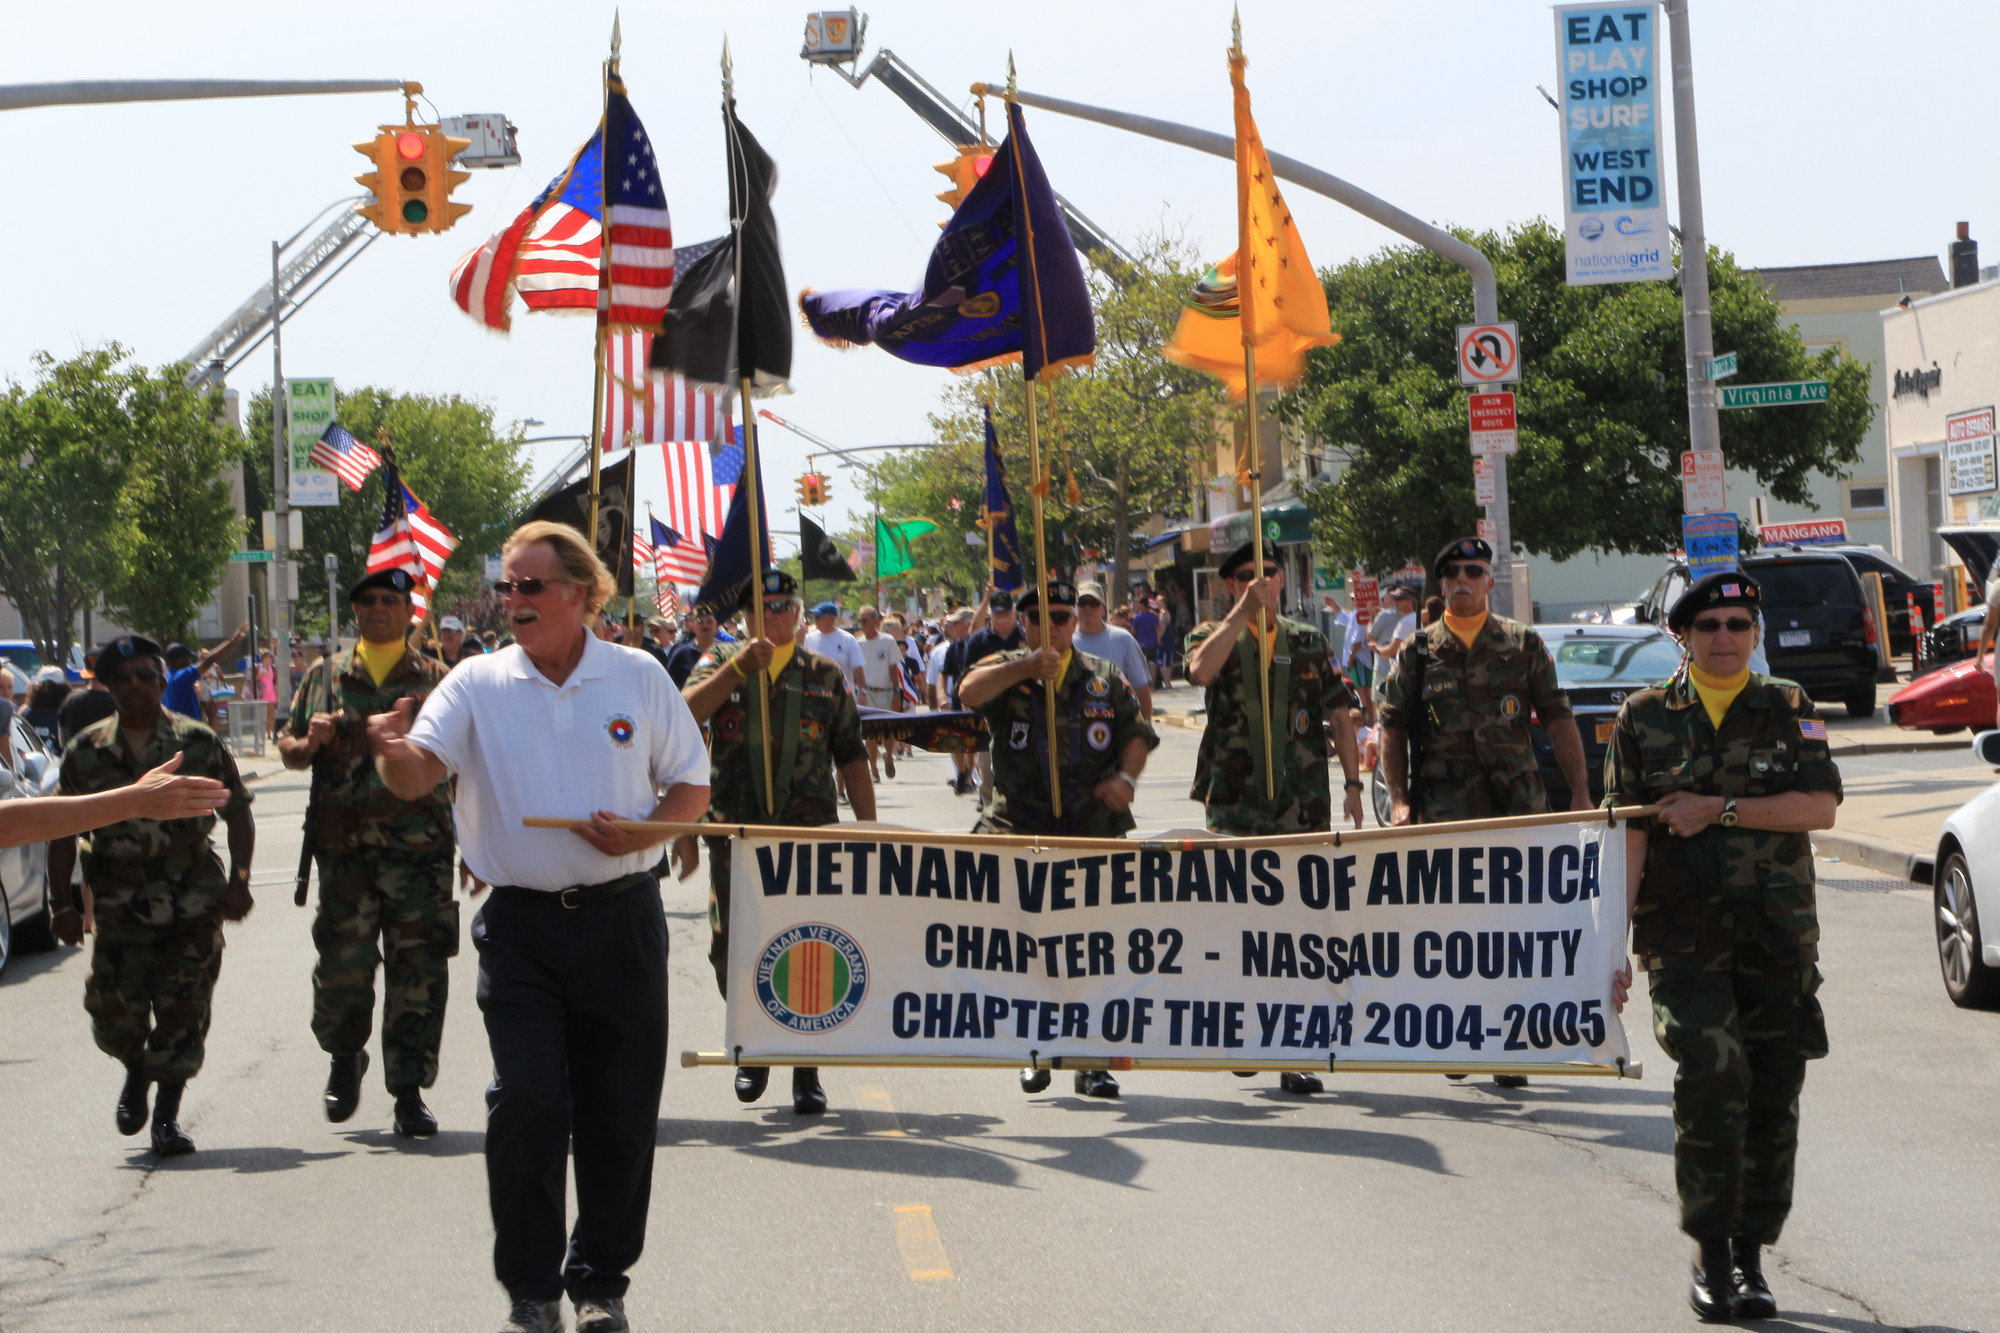 The Nassau County Vietnam Veterans of America marched with pride.